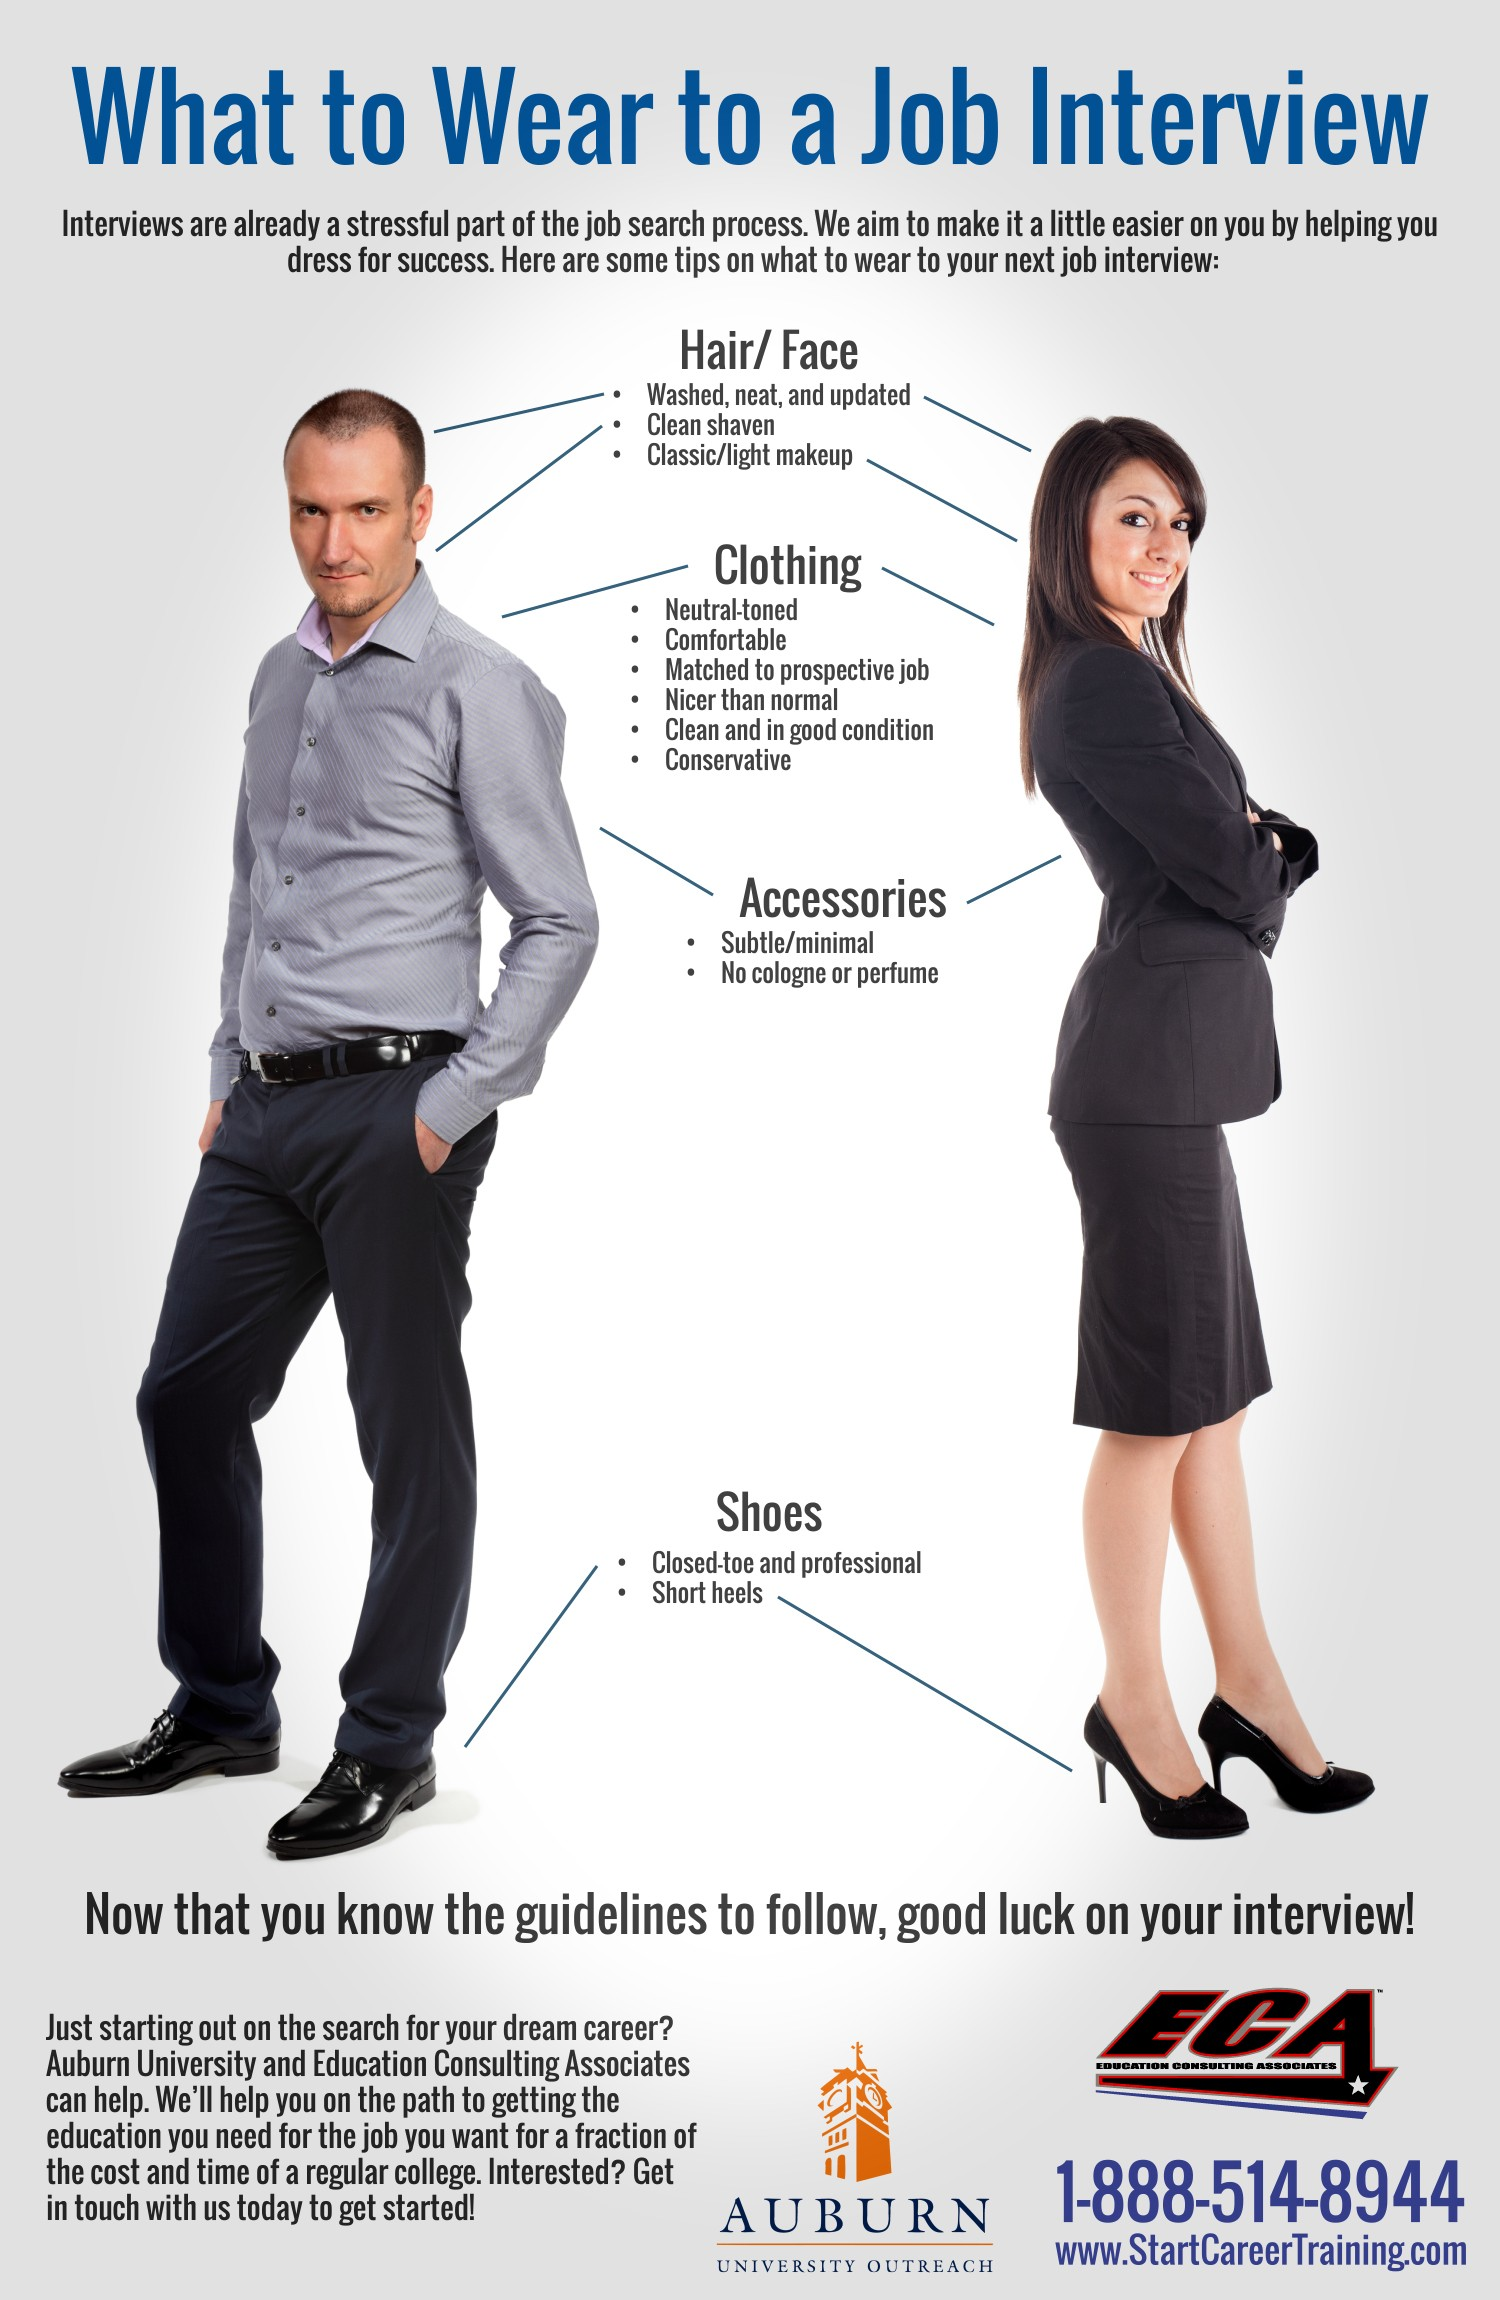 What to Wear to a Job Interview | Visual.ly